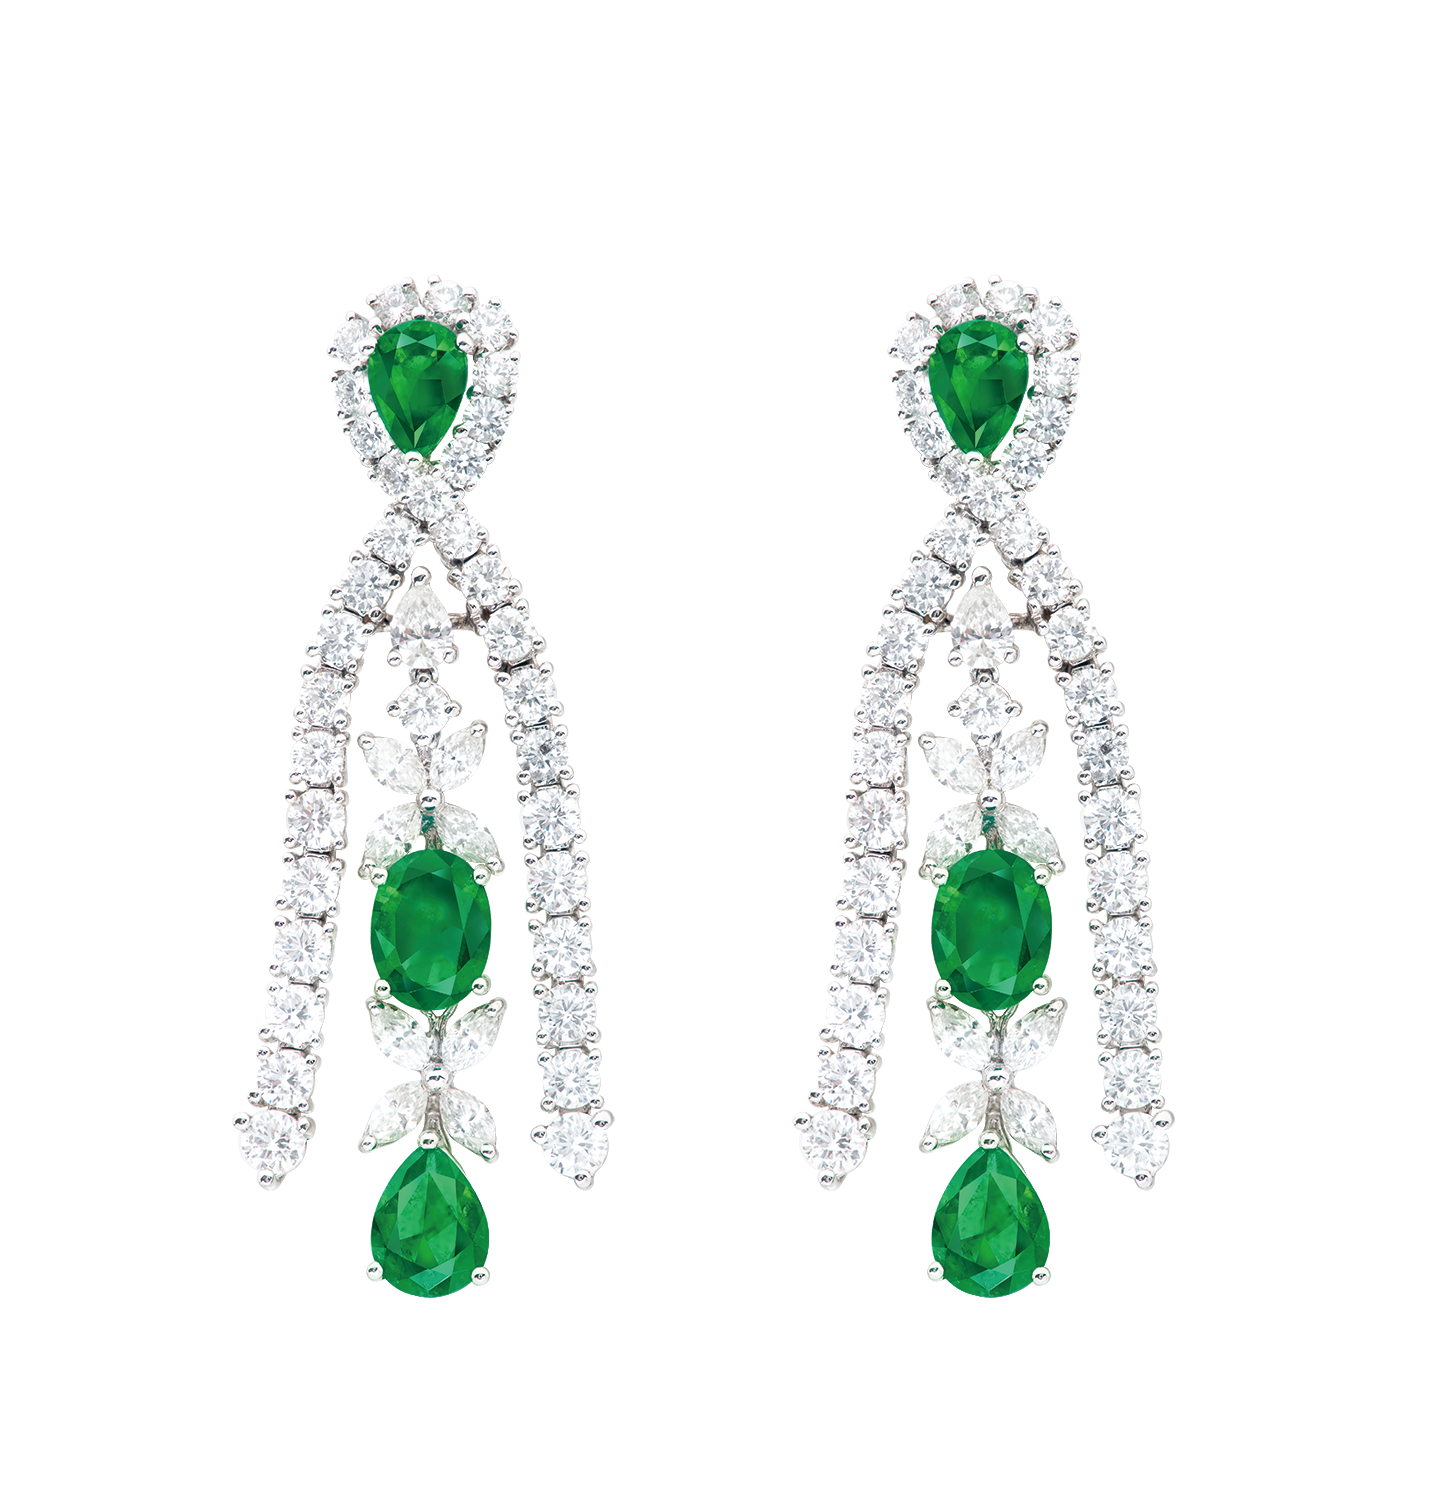 祖母綠鑽石耳環